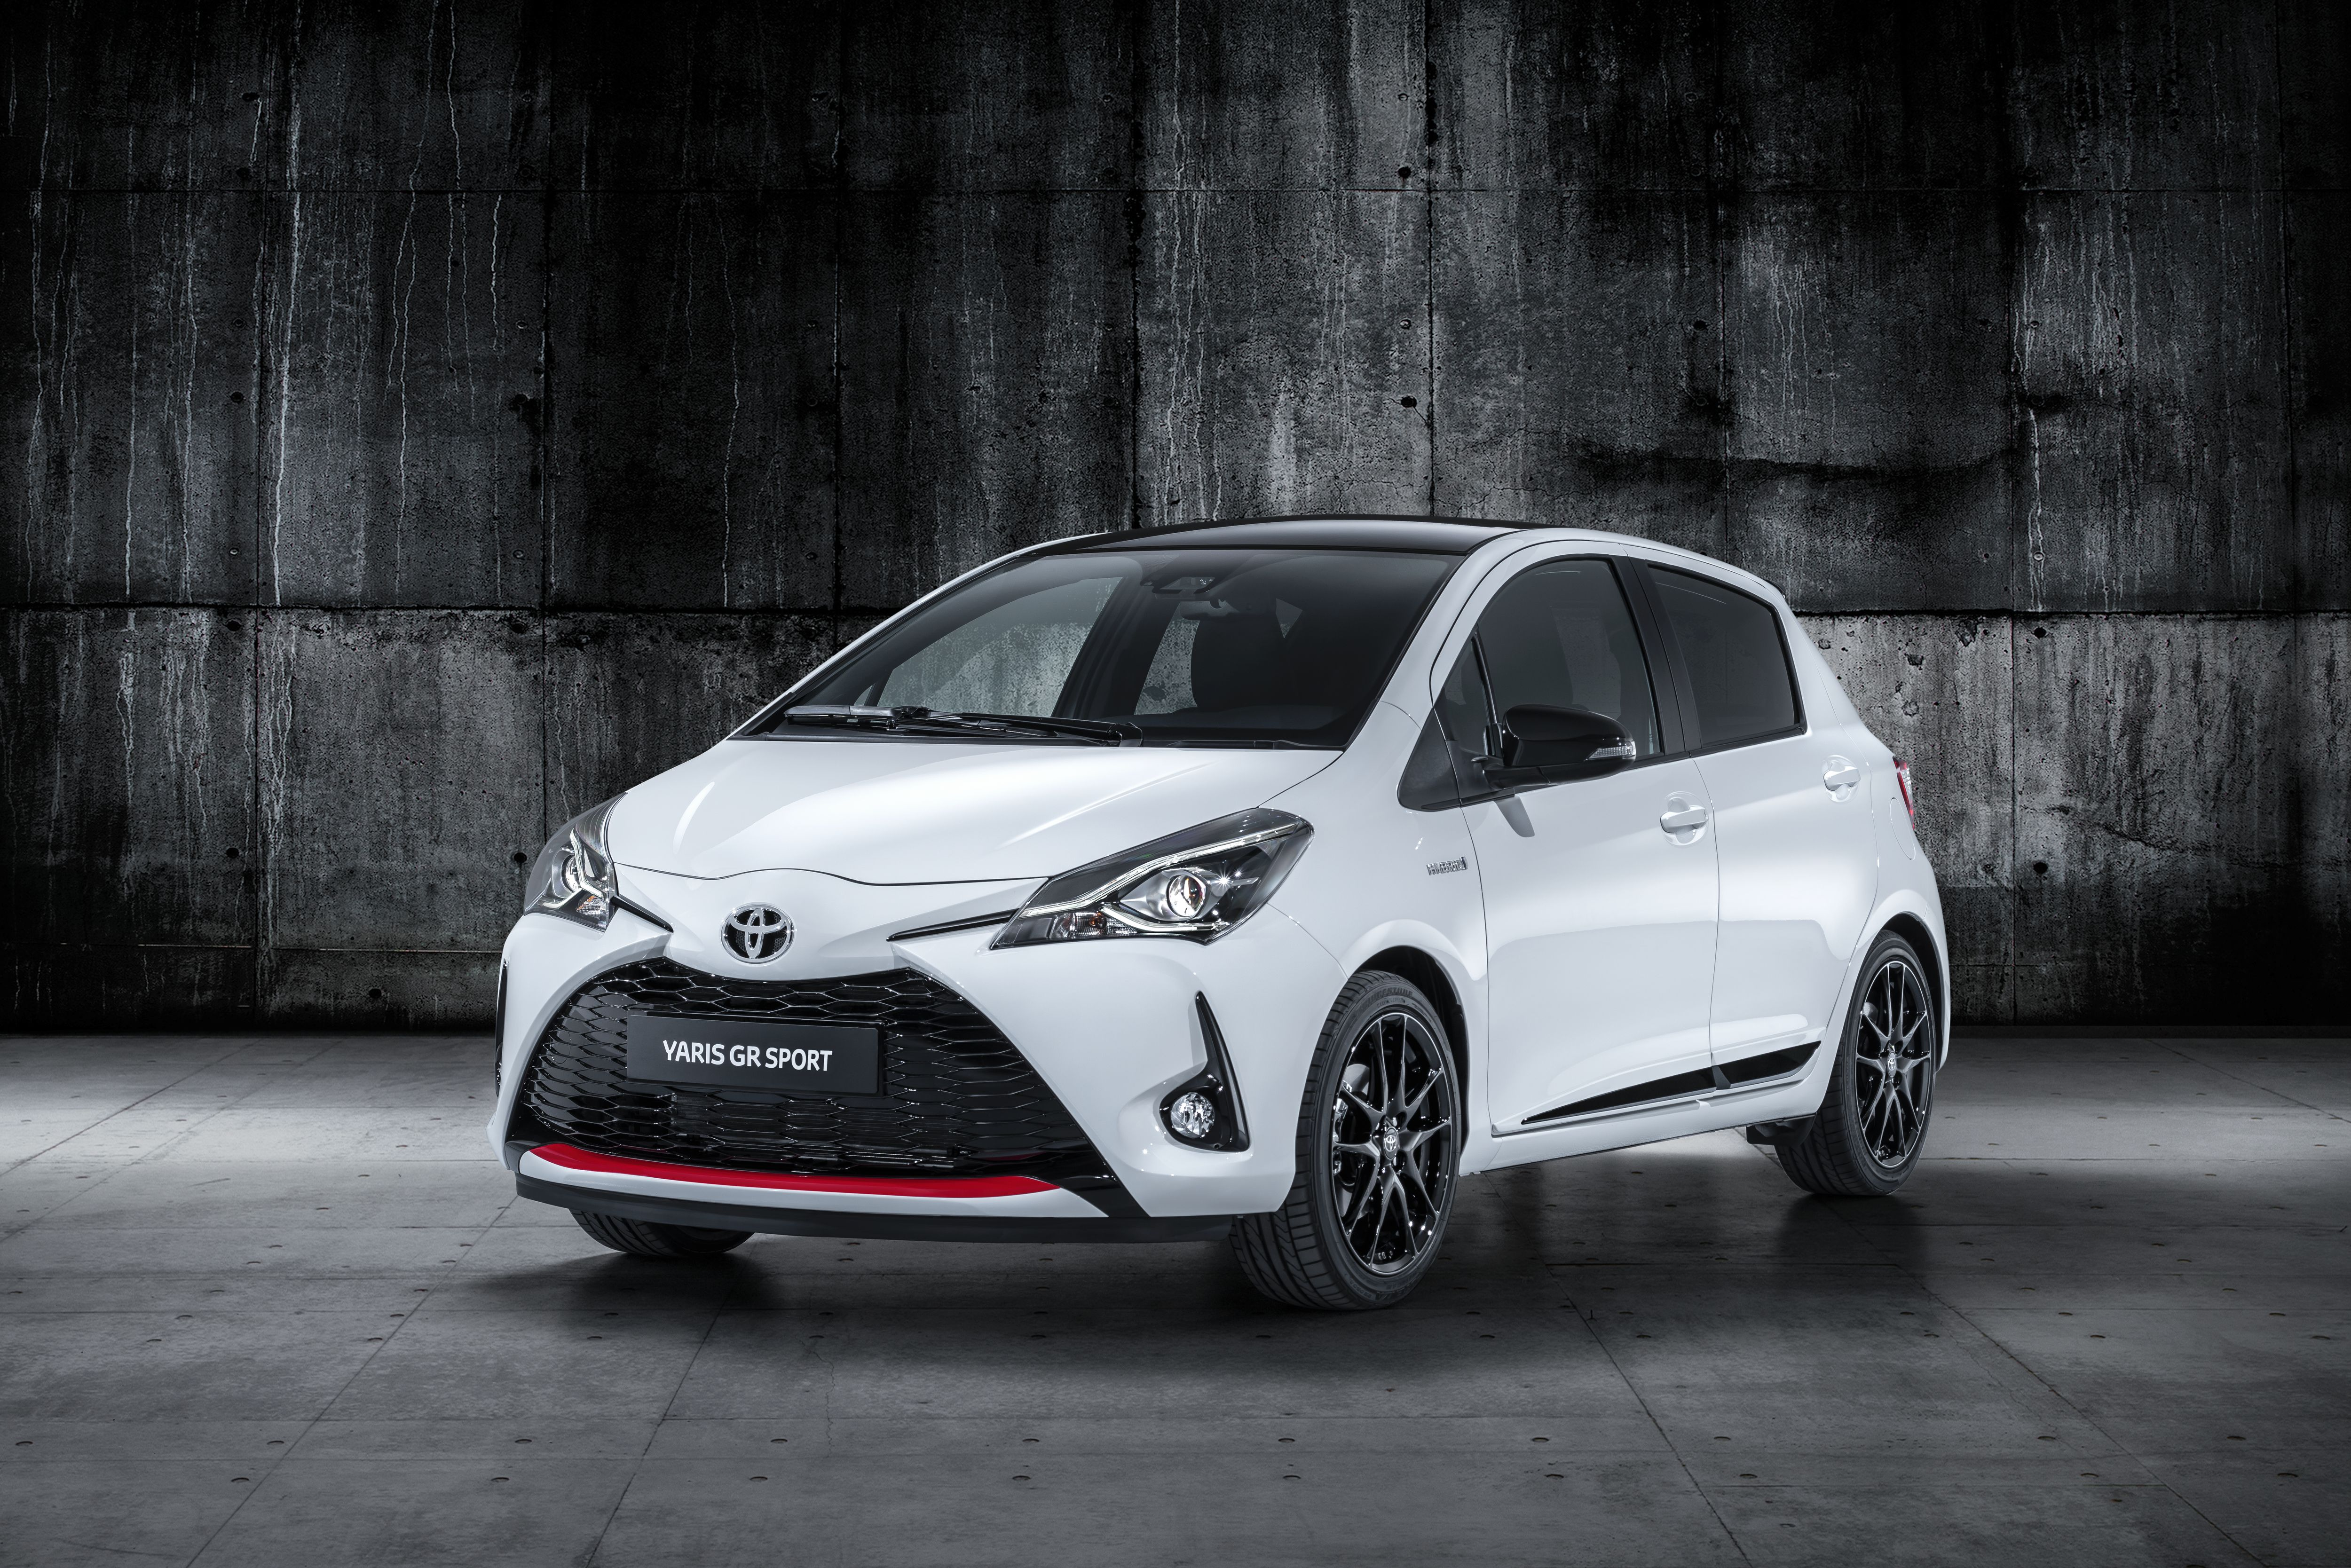 The Toyota Yaris Gr Sport Cruises Into Paris With Updated Looks And Revised Hardware Top Speed Yaris Toyota Cars Toyota